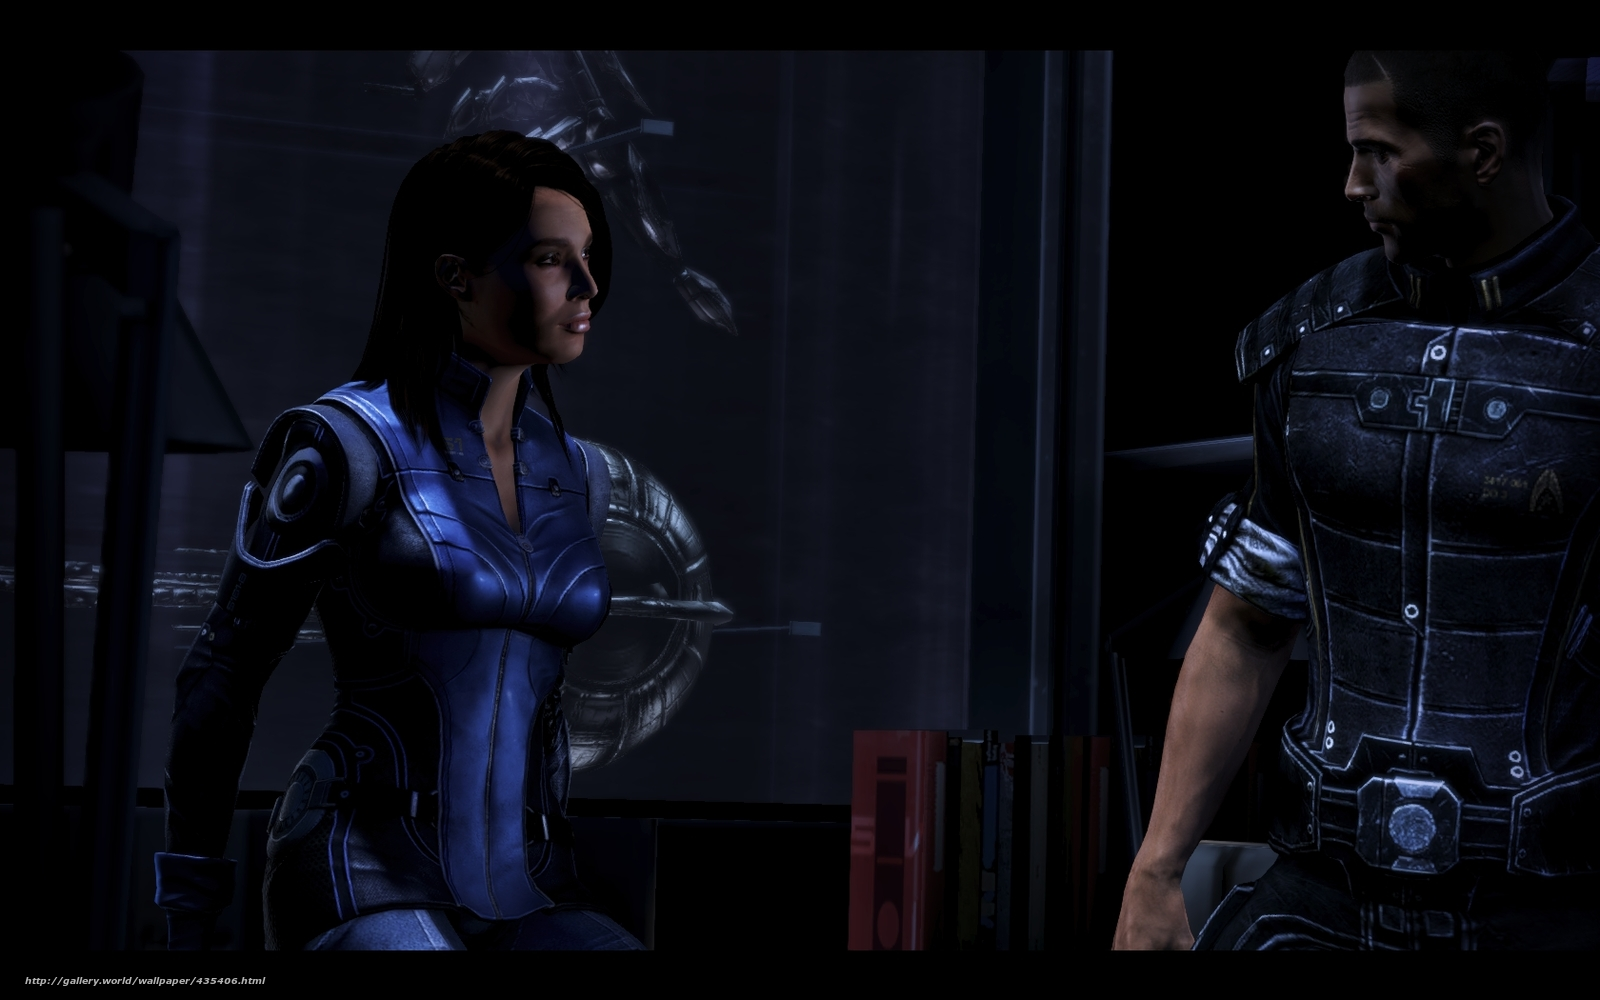 Mass effect ashley nackt sexy images